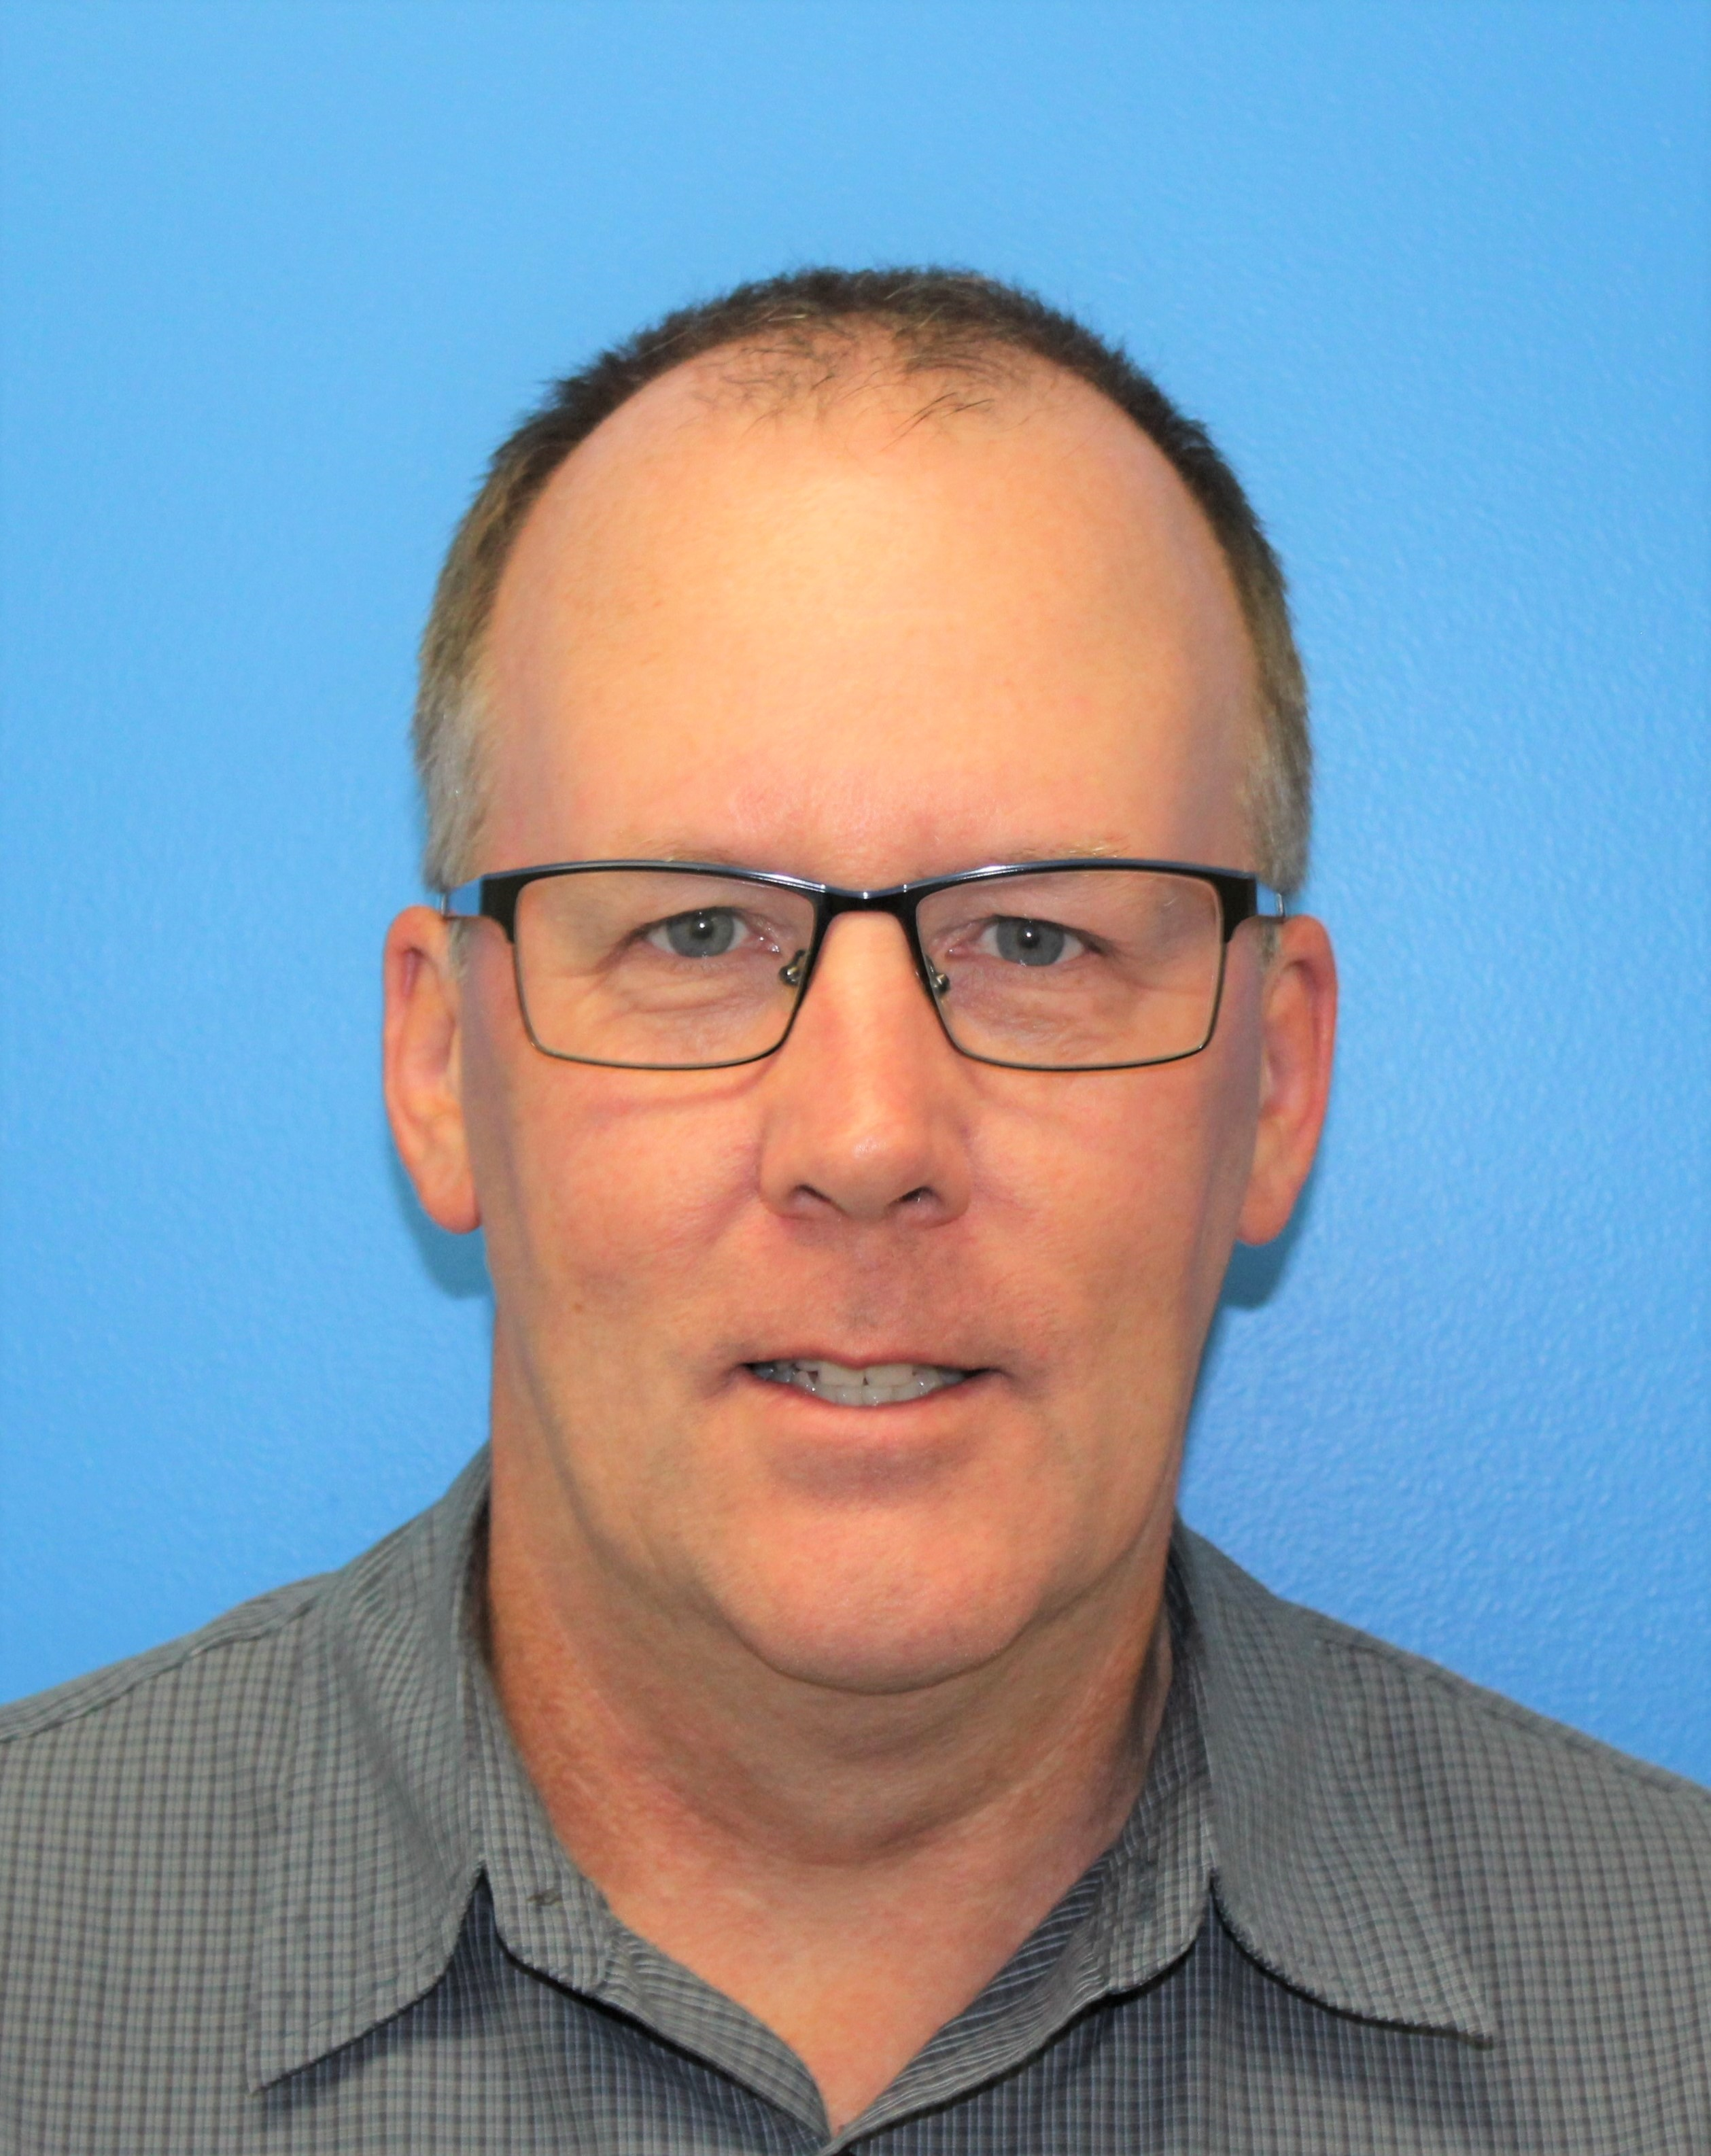 Tom Baker is the VP of Mission Assurance at Stellar One Consulting, an SAP Partner specializing in SAP Business One Cloud ERP implementations.